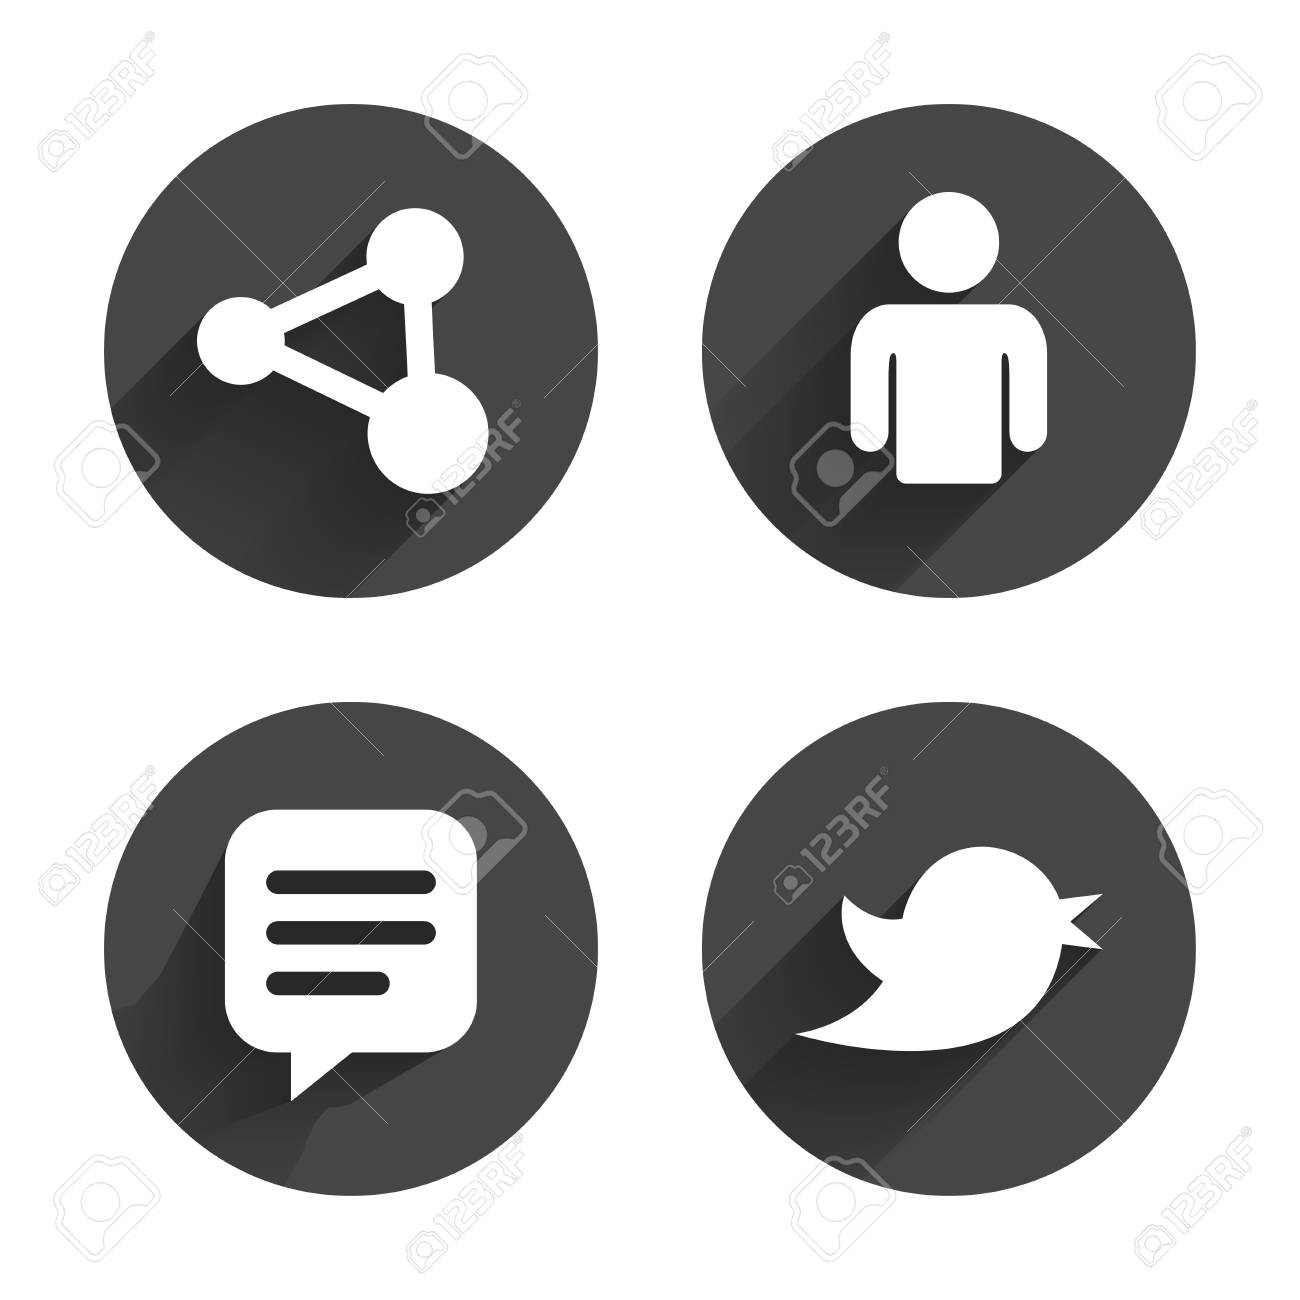 Human Person And Share Icons Speech Bubble Symbols Communication